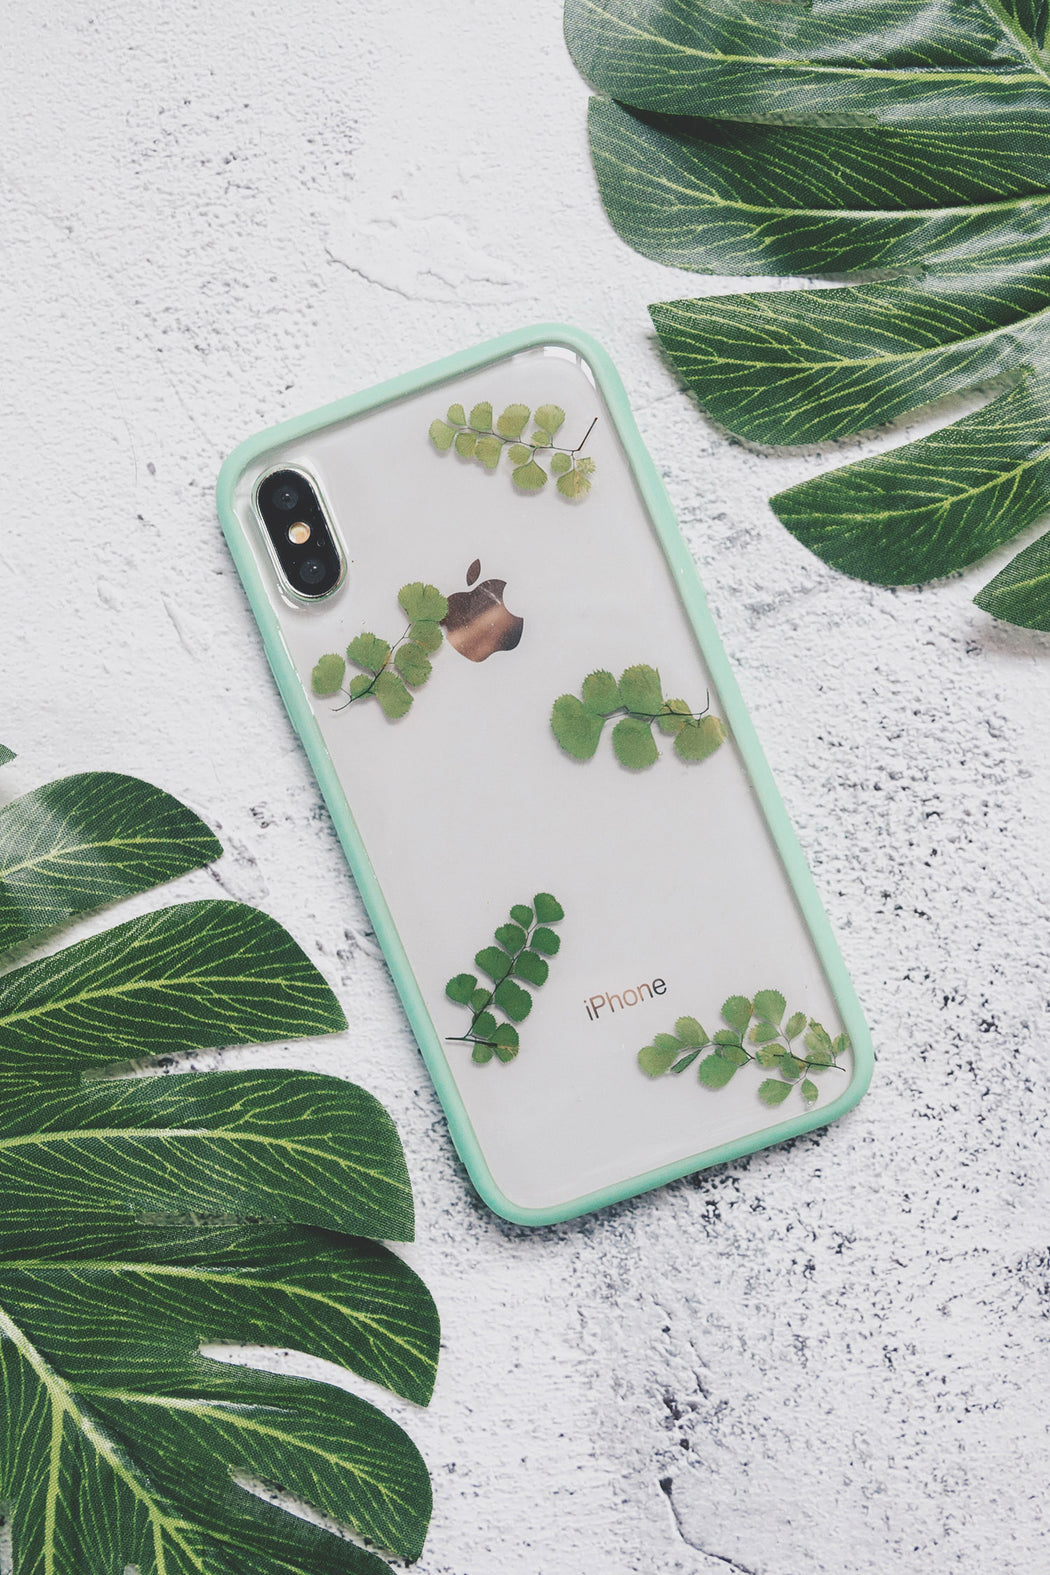 pressed flower green fern leaf cute protective anti drop floral iphone 7 8 bumper case olive floral neverland floraly